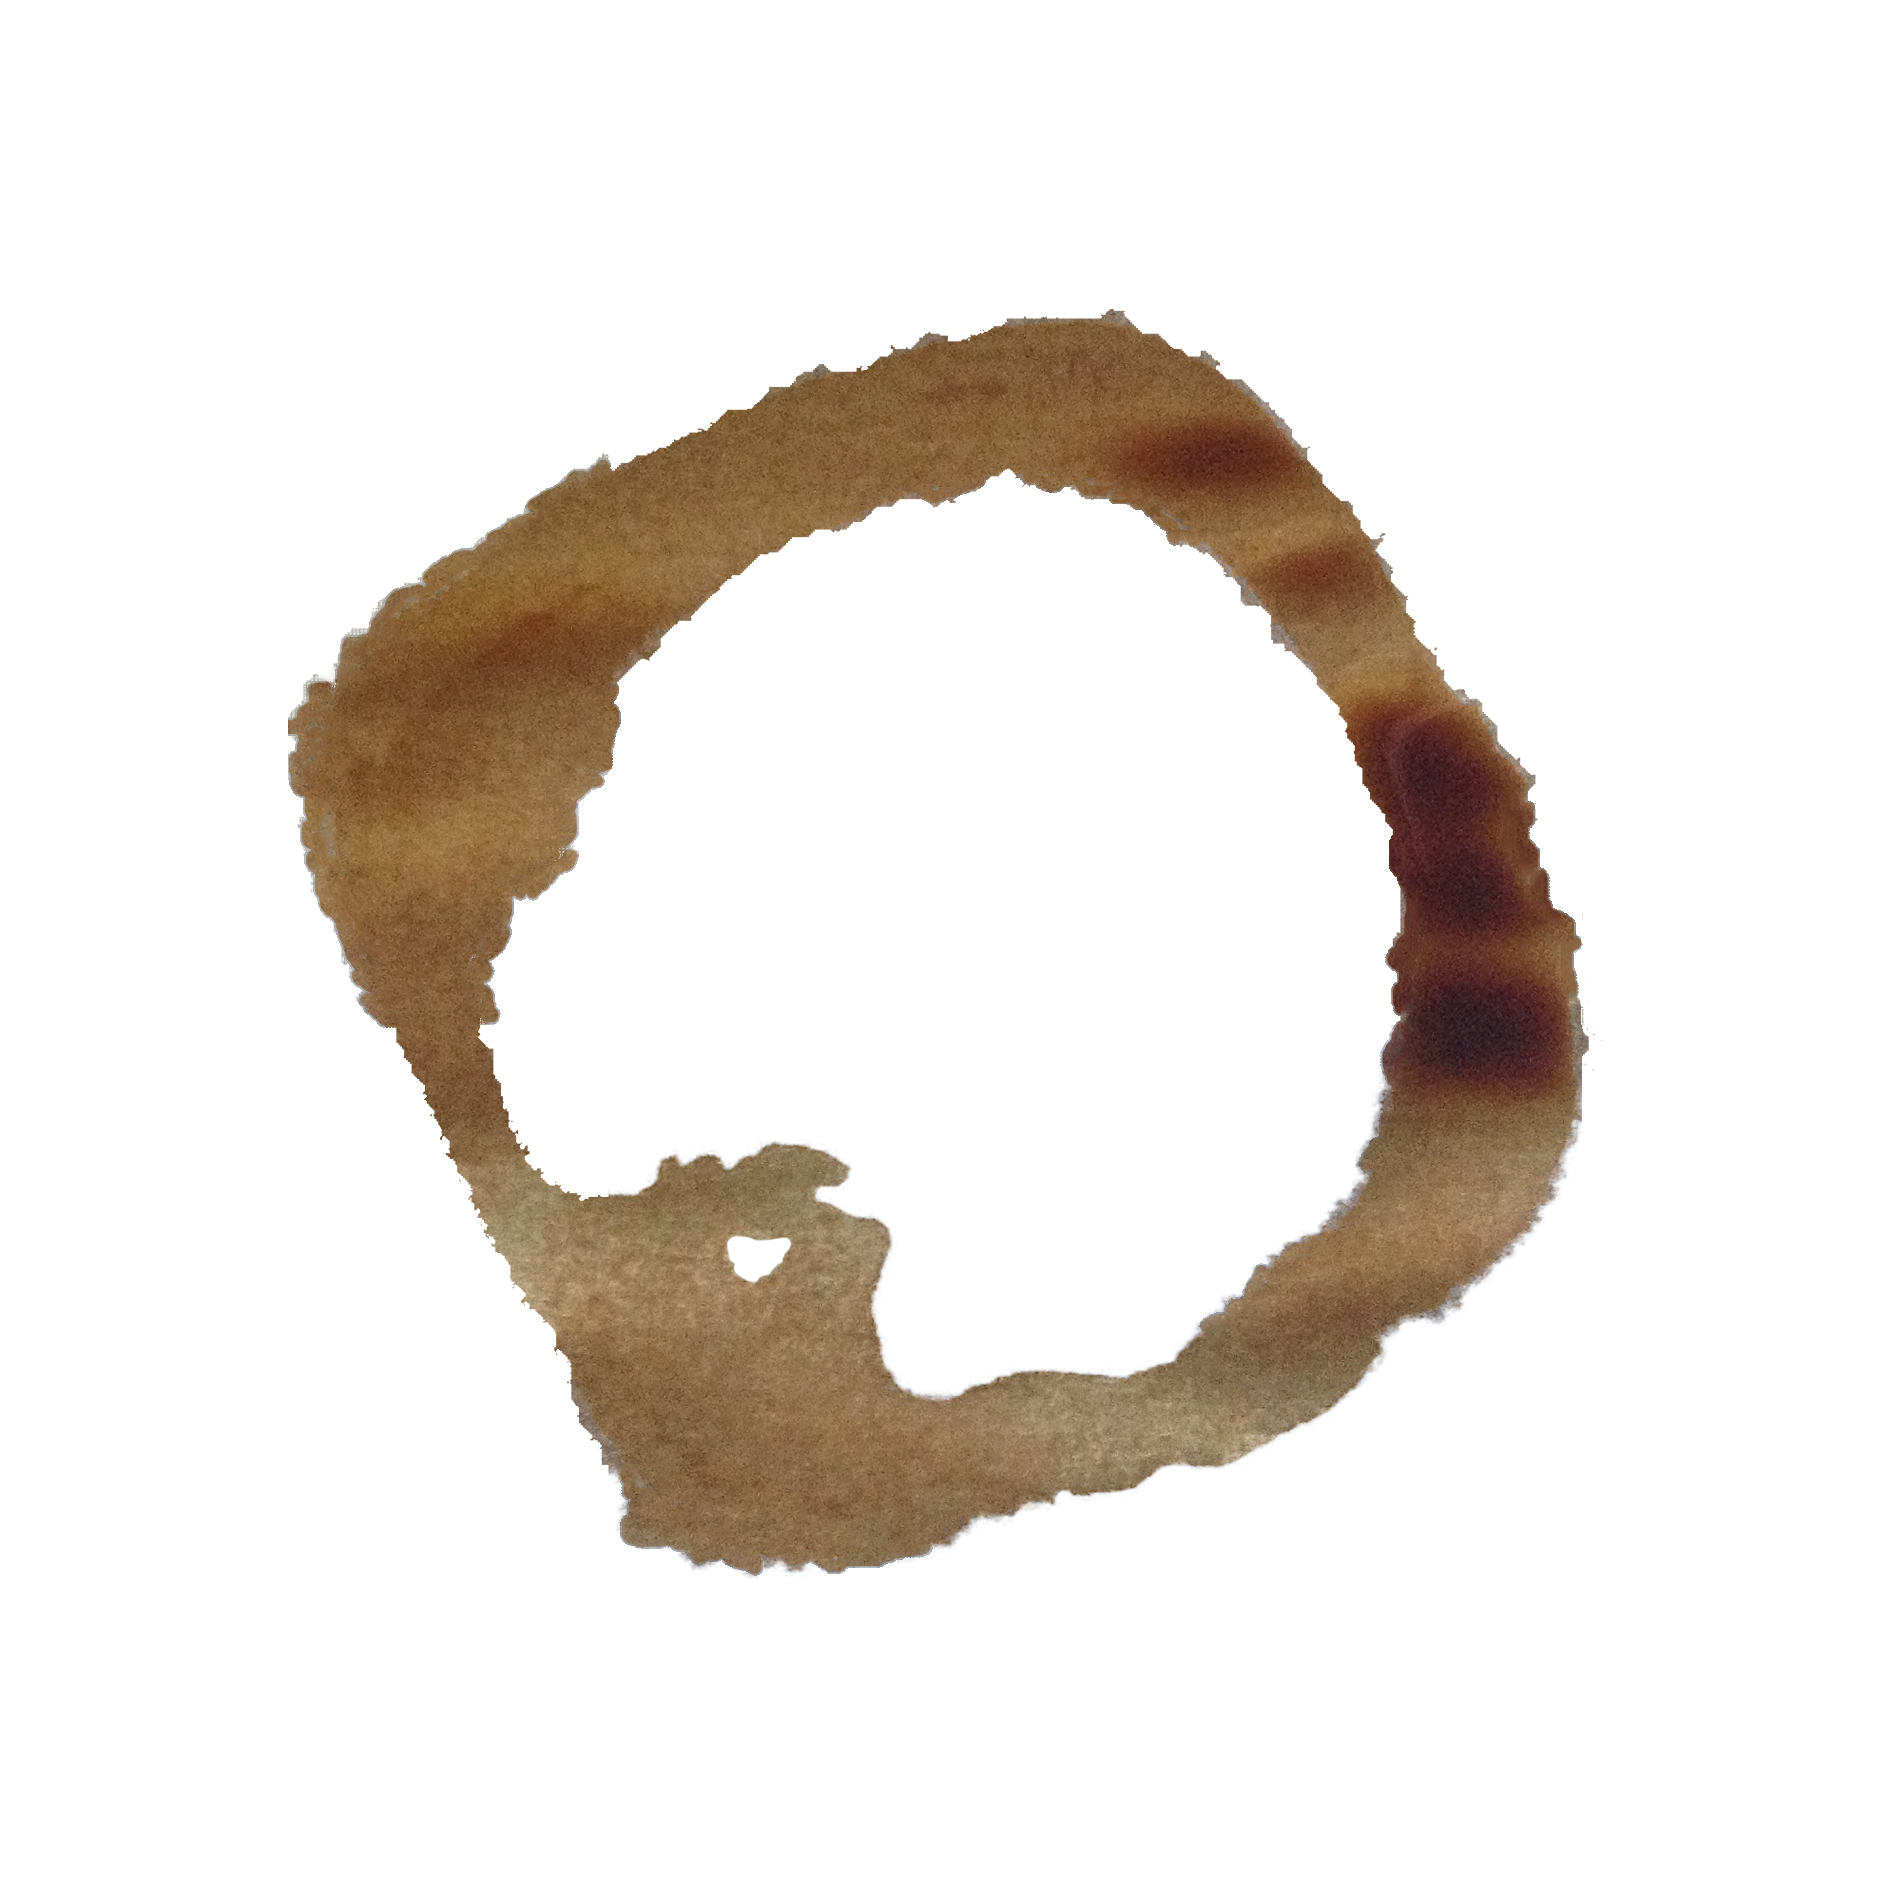 coffeestainmask2